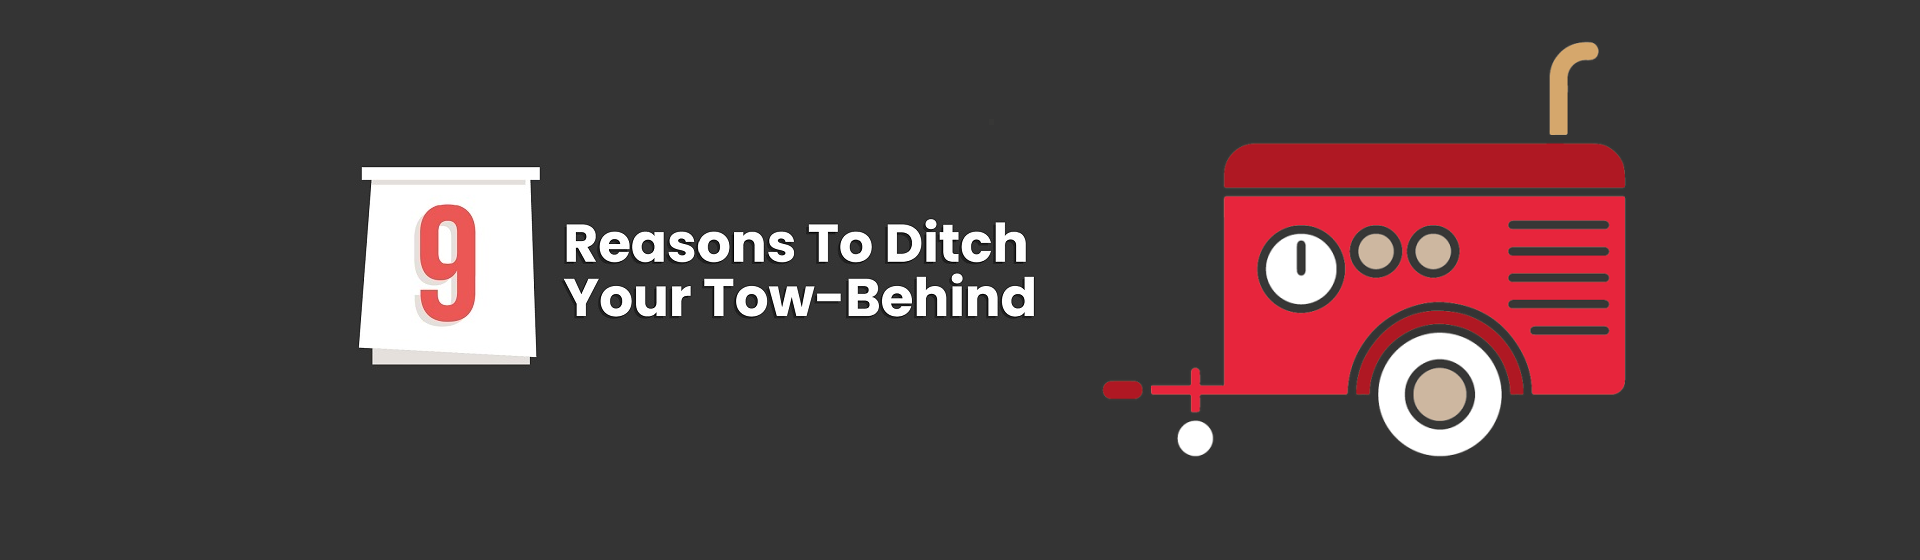 ditch-tow-behind-banner-a